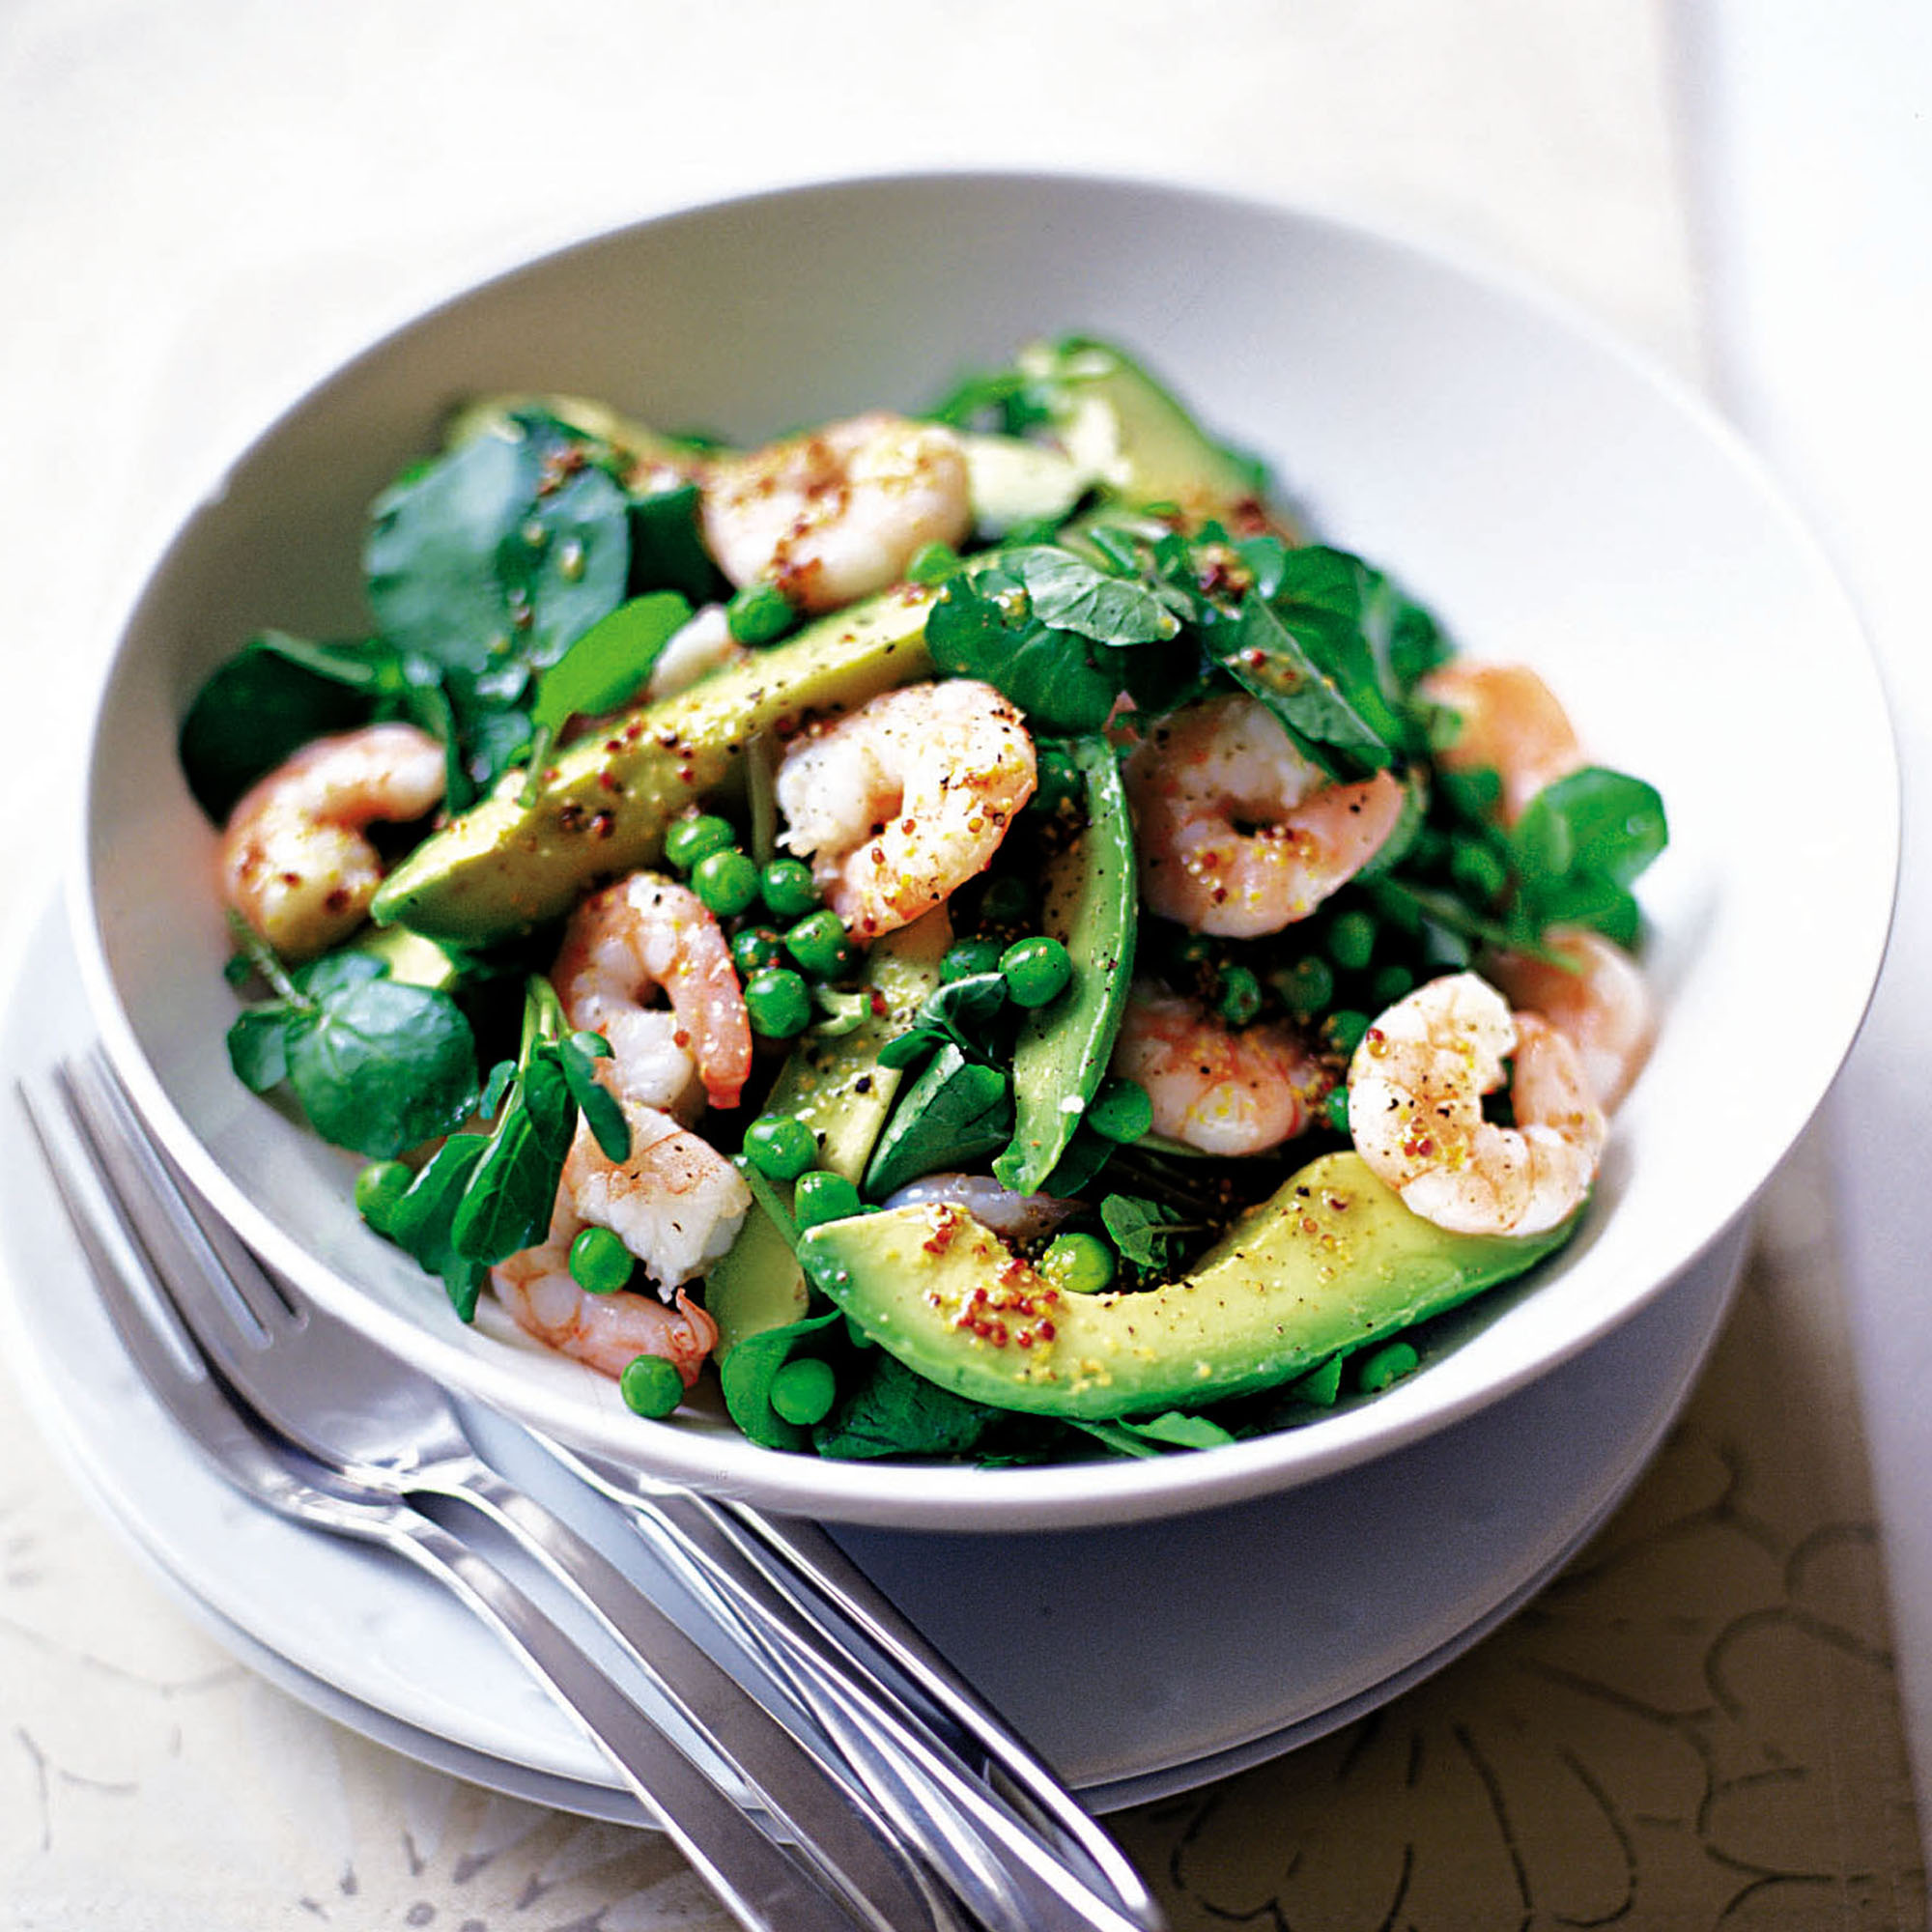 prawn and avocado salad with lemon dressing